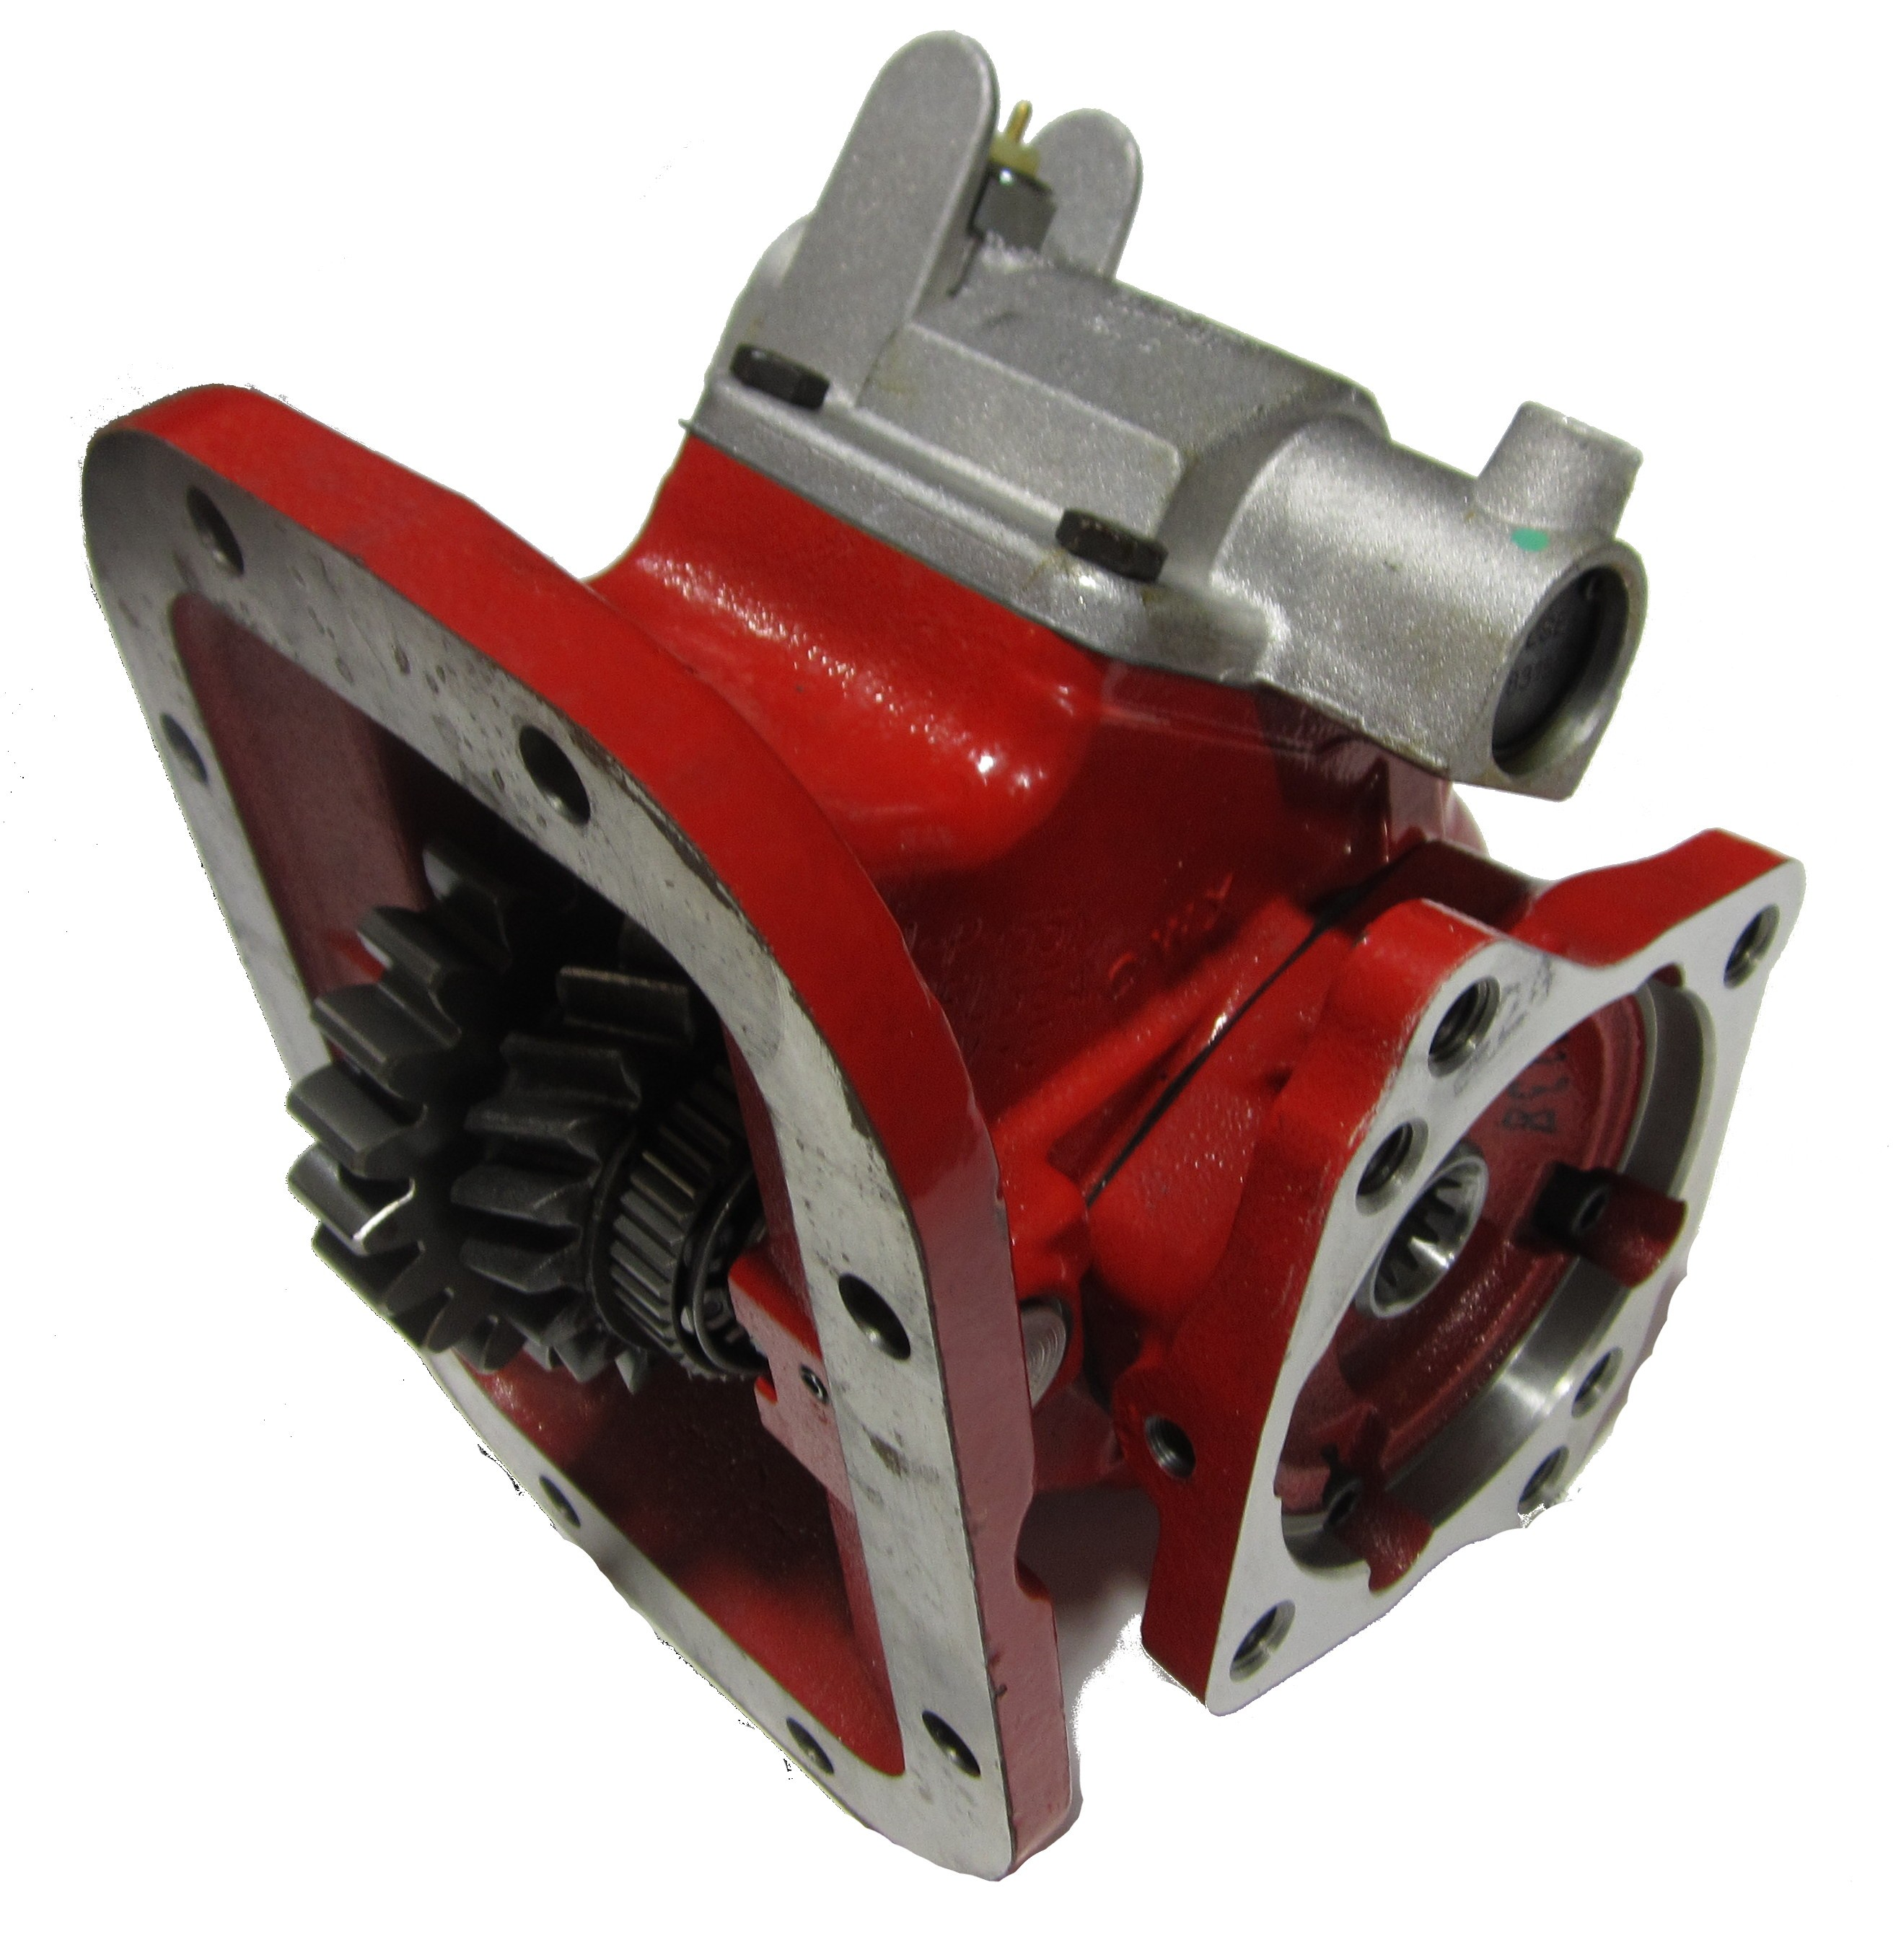 489 Series Chelsea Pto 8 Bolt Mount Hydraulics